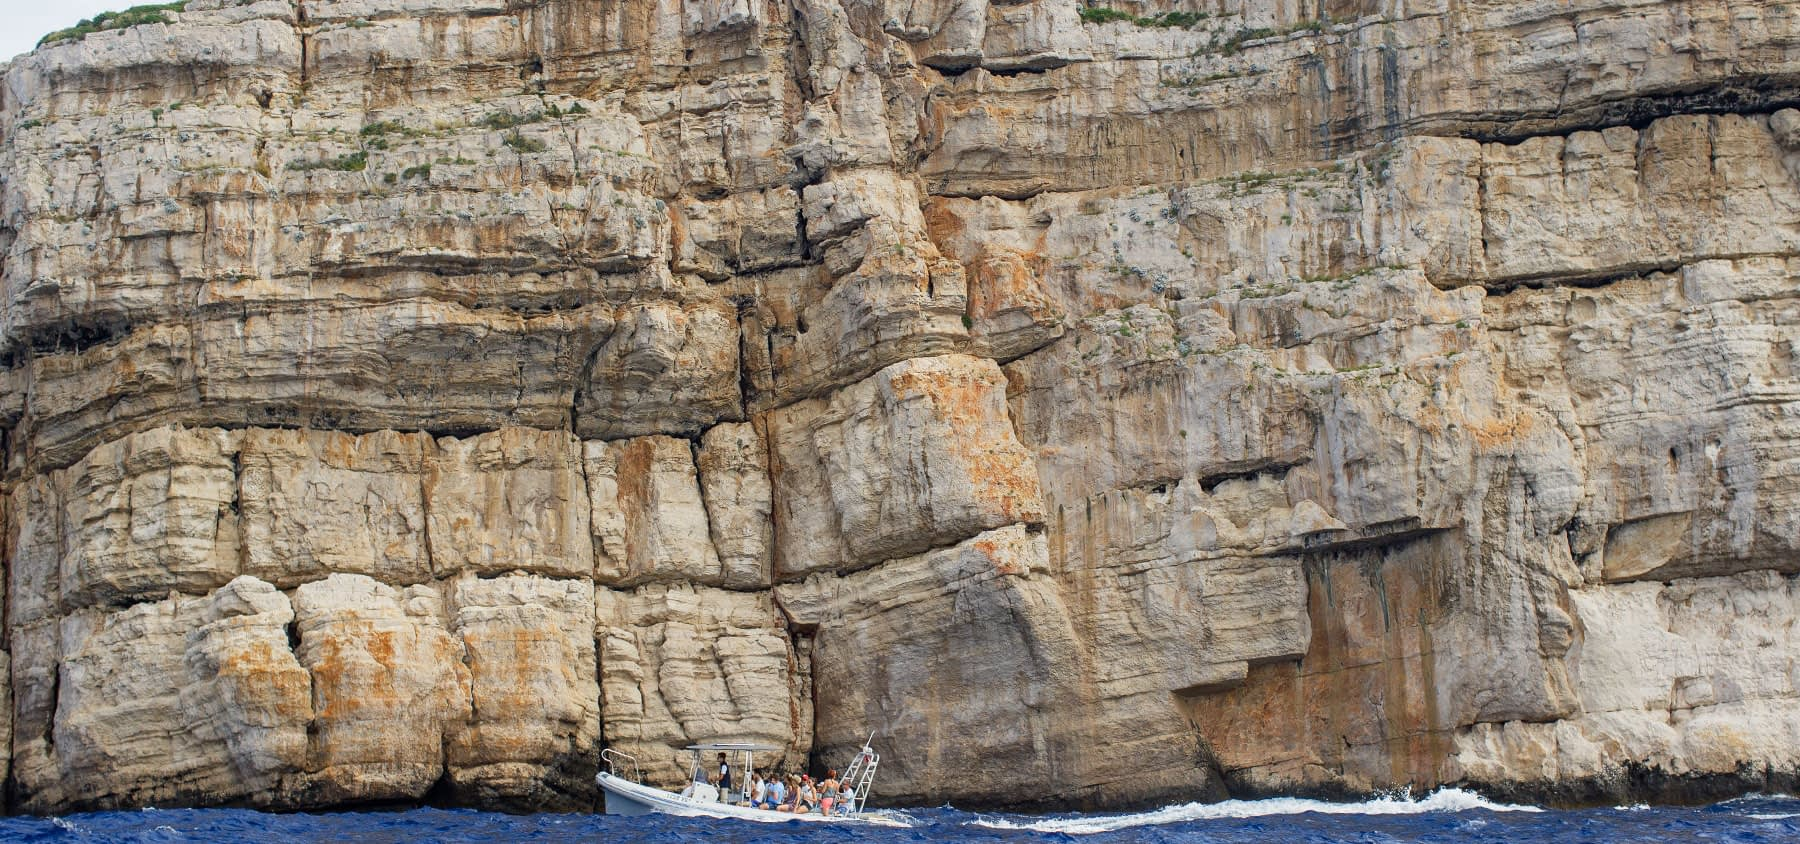 Archipelago Tours Blog and Tips: Carved by the elements - photo of our boat under one of the cliffs in Kornati archipelago